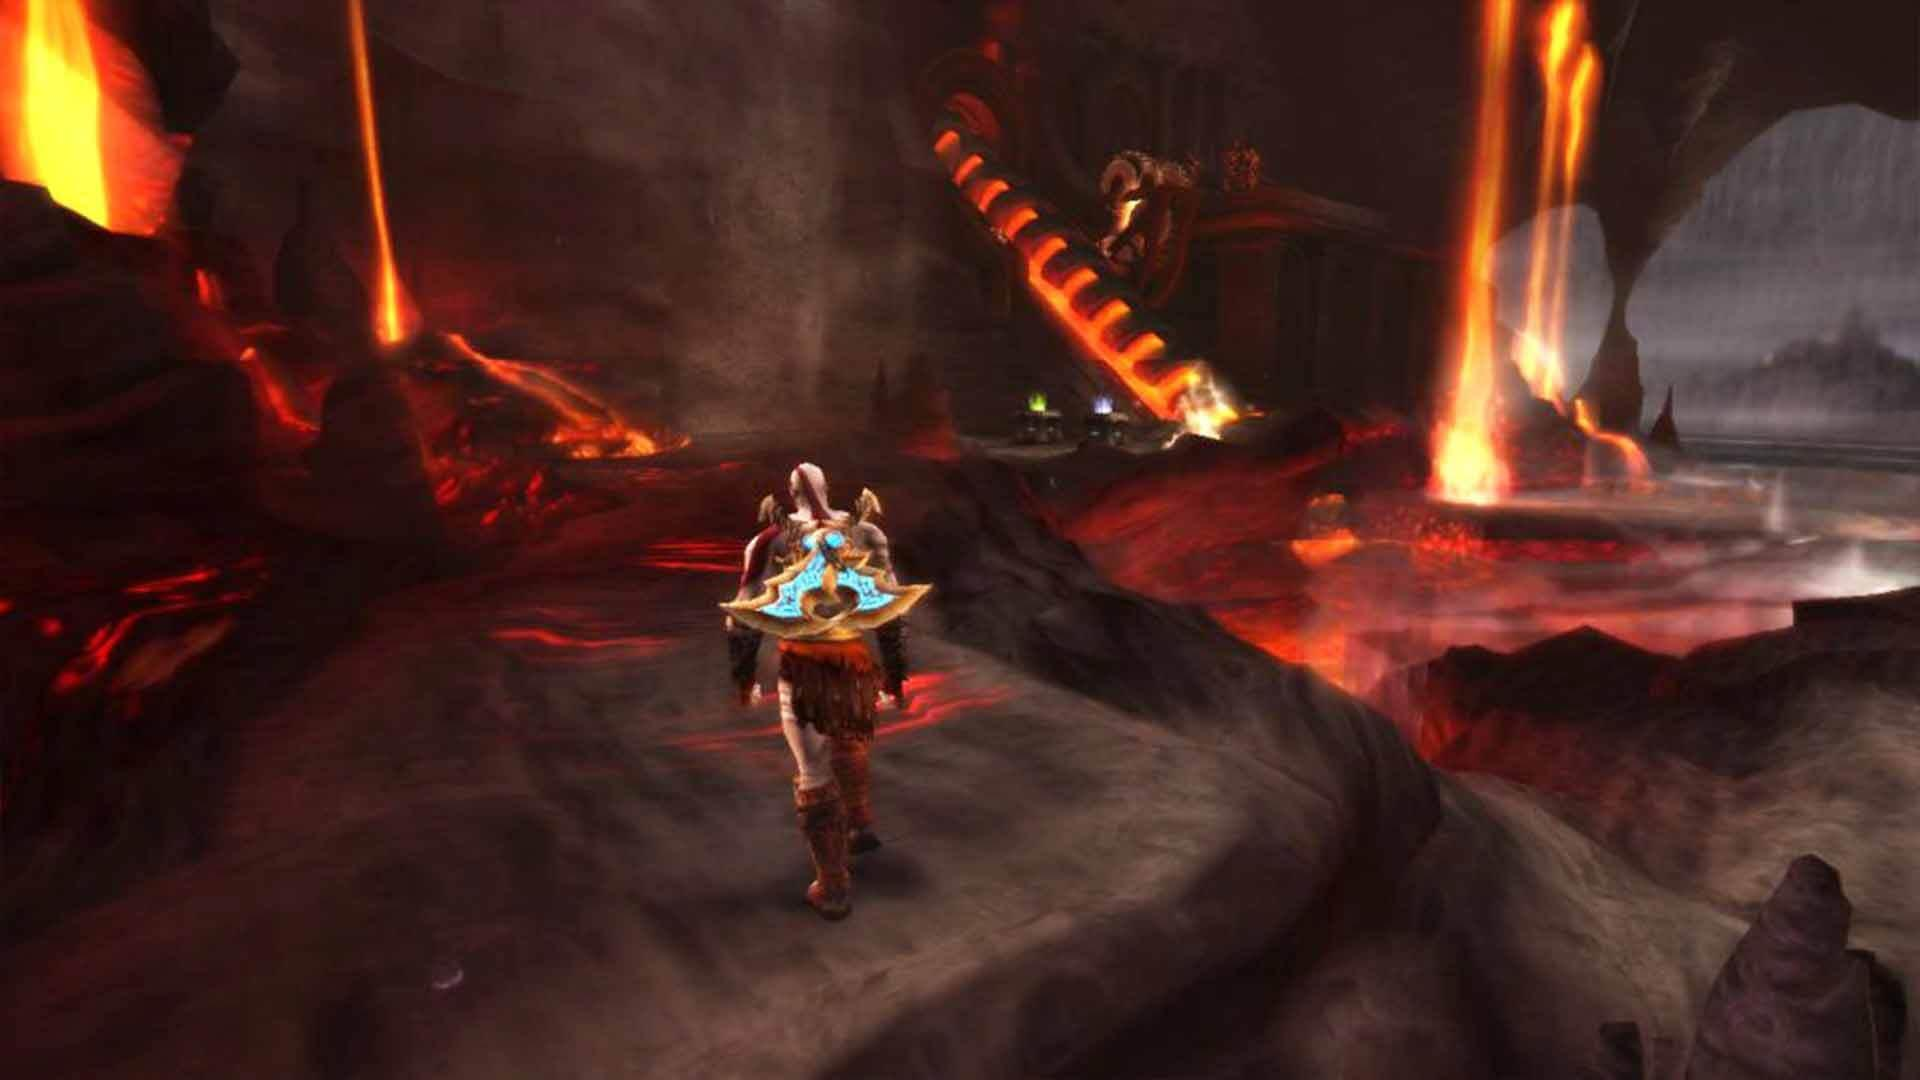 New Hint God Of War 2 for Android - APK Download